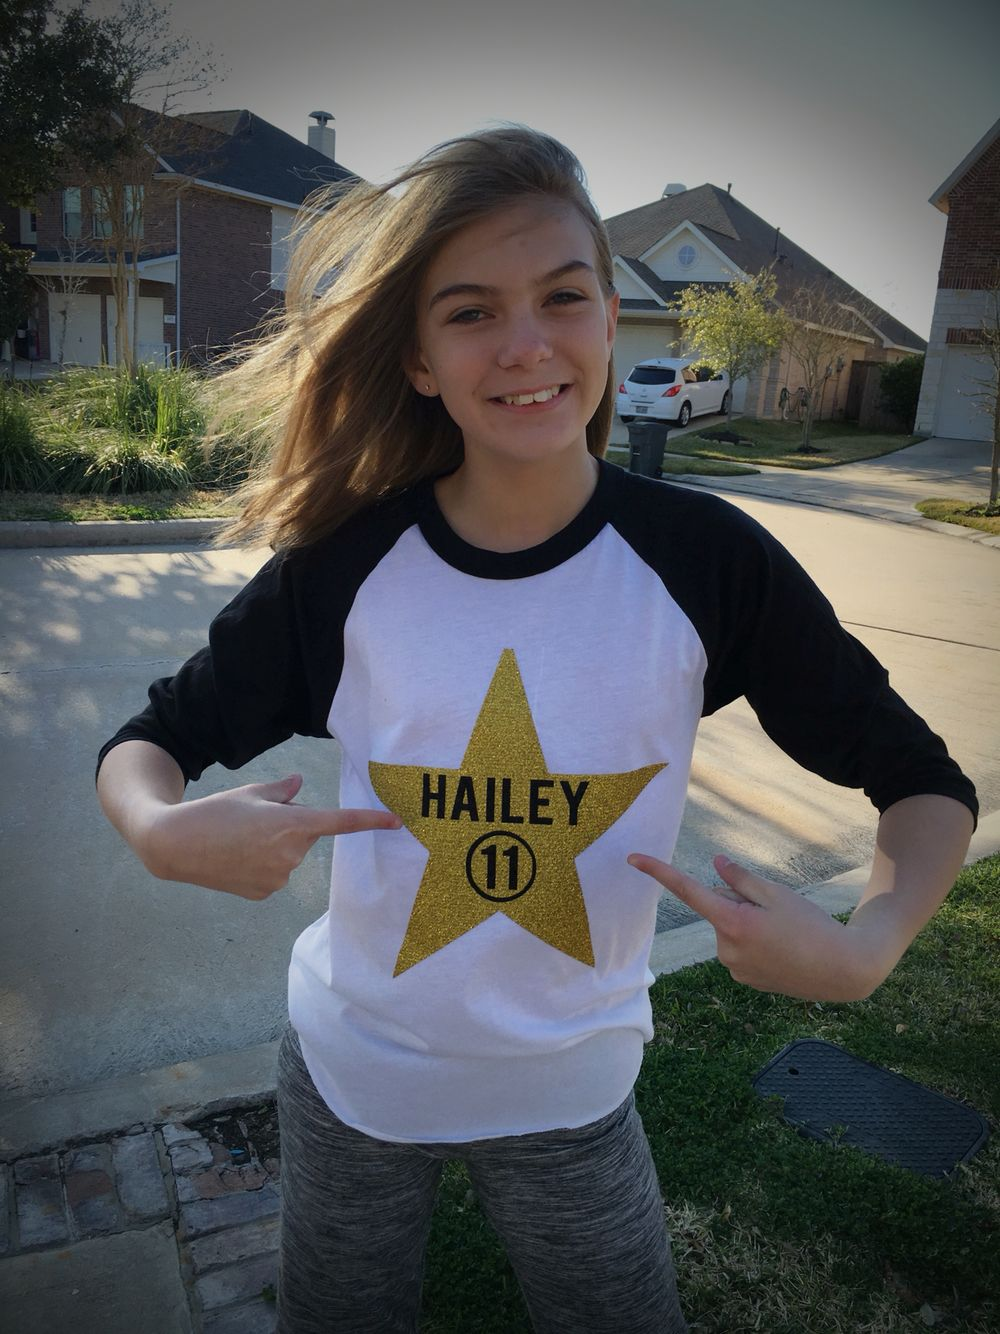 Hollywood Star Birthday Shirt. 11 Years Old!